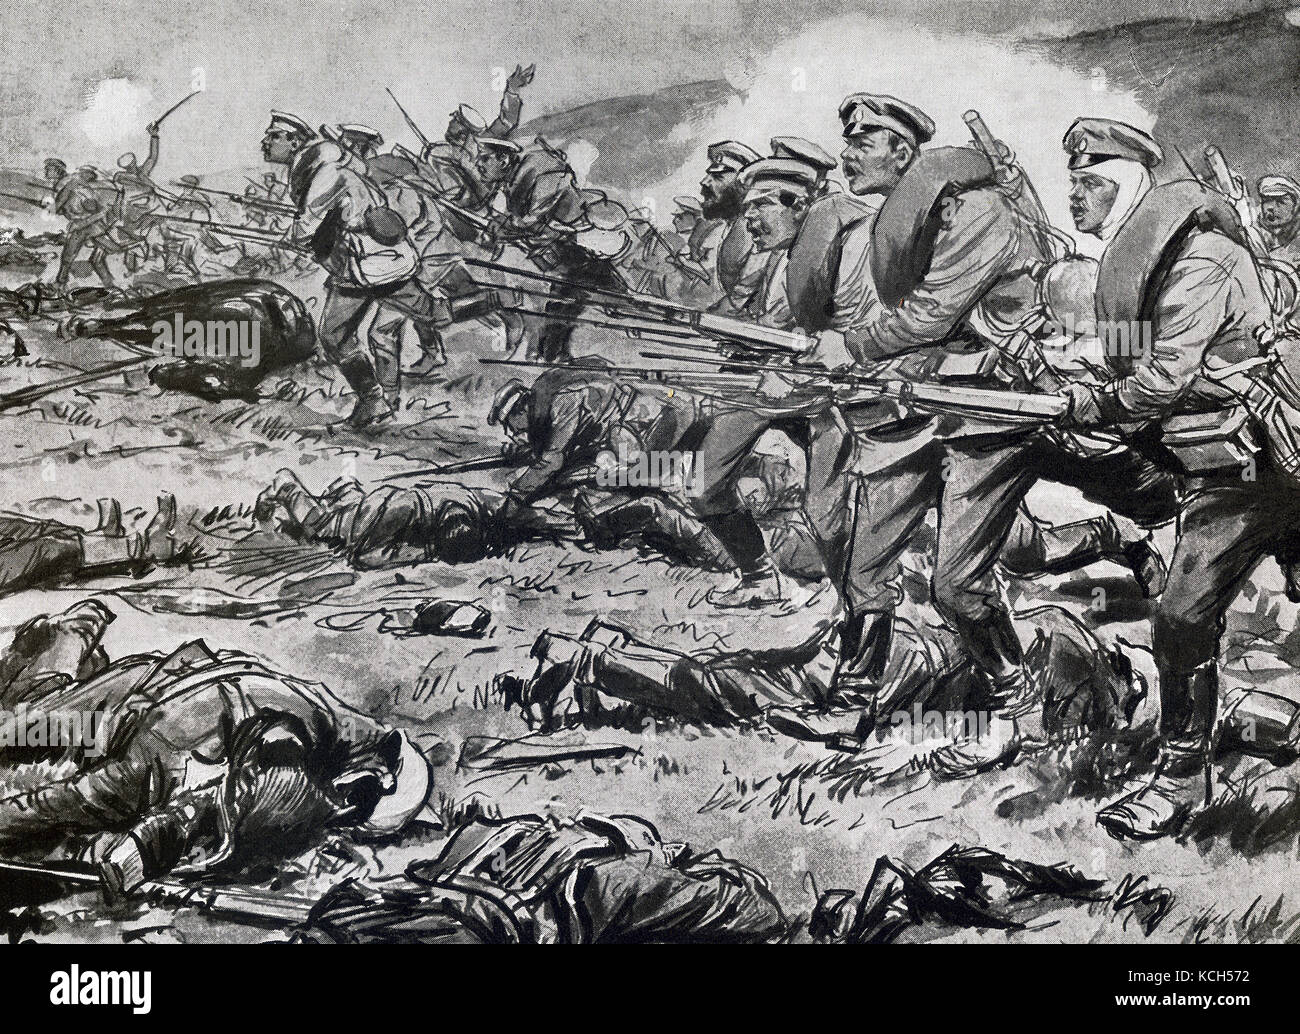 This illustration dates to around 1916. It shows Russian infantry advancing under fire during World War I. - Stock Image